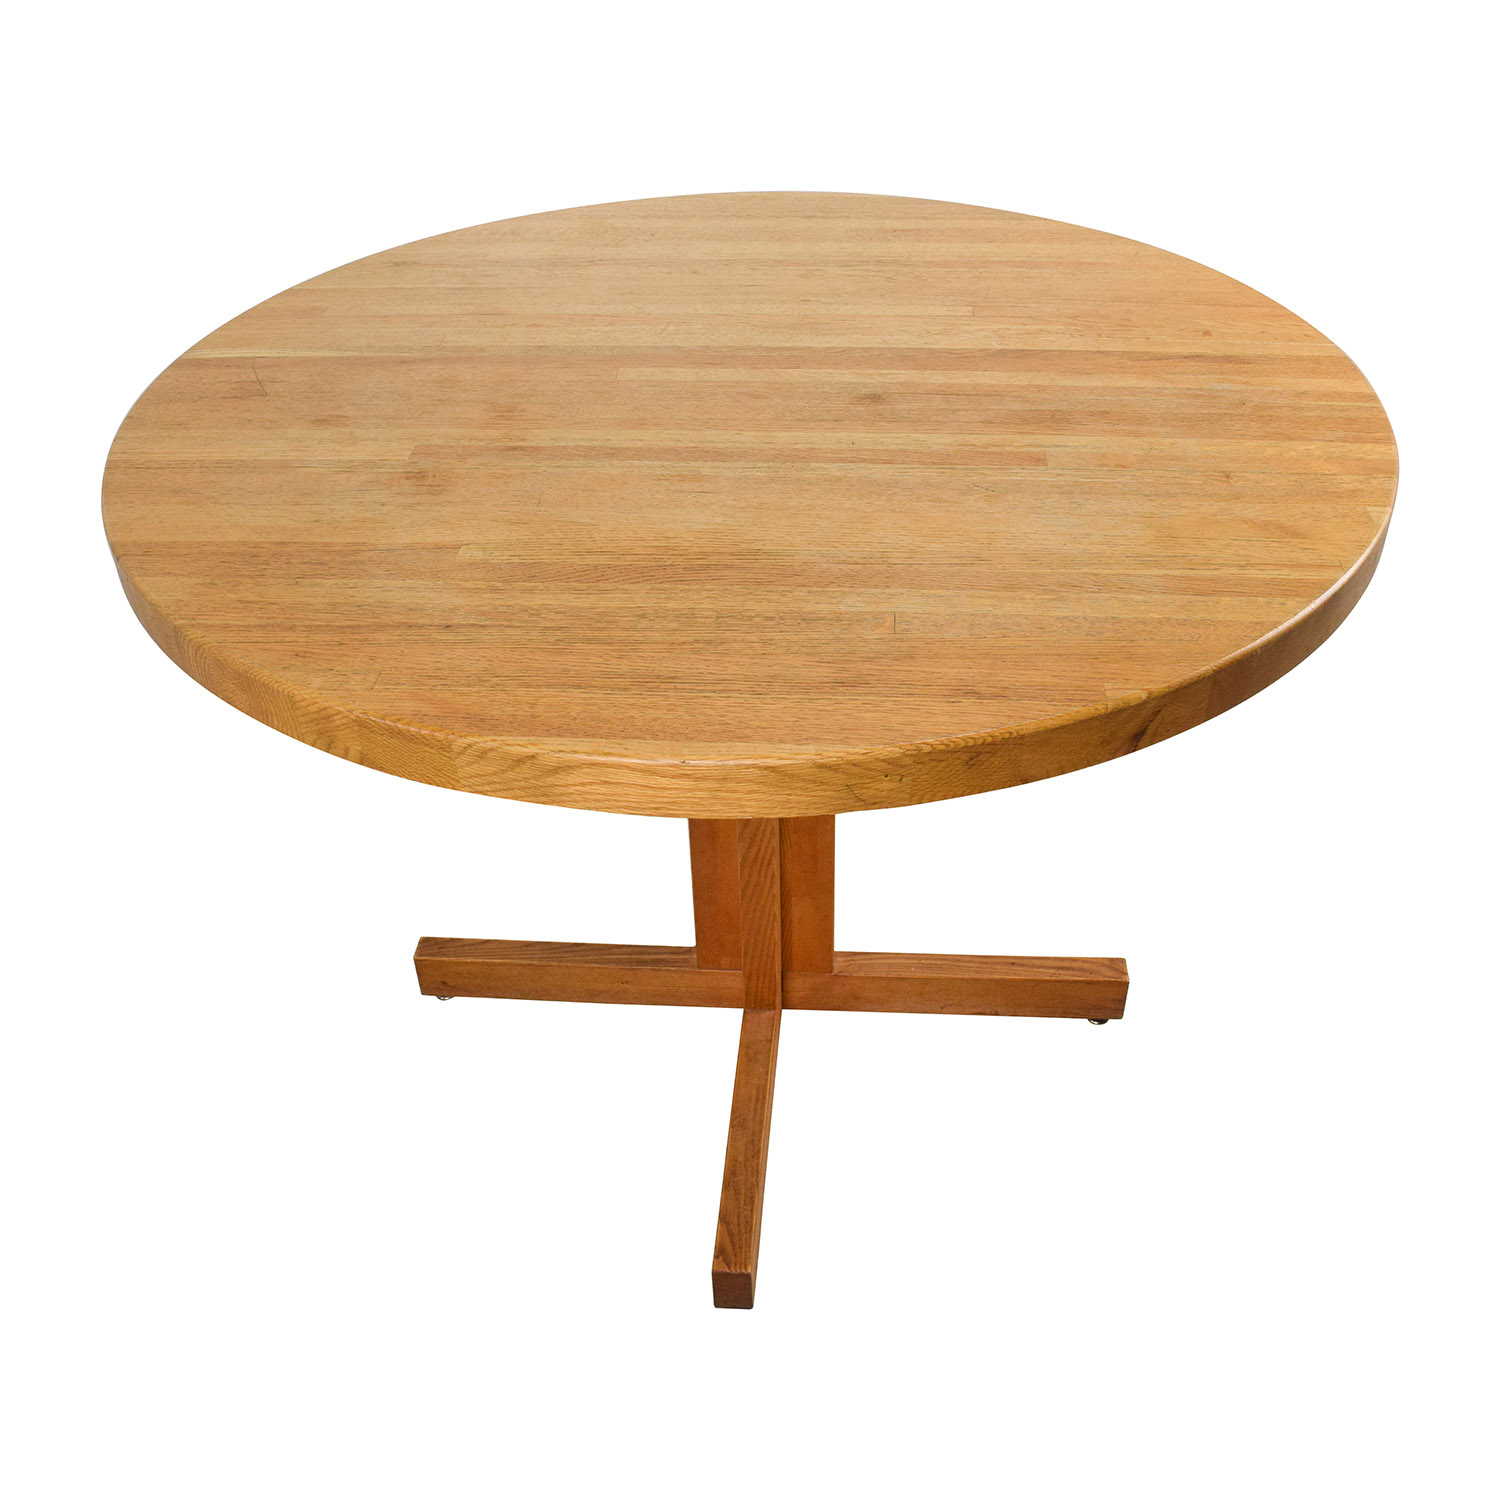 90 off solid oak round table tables for Buy round table